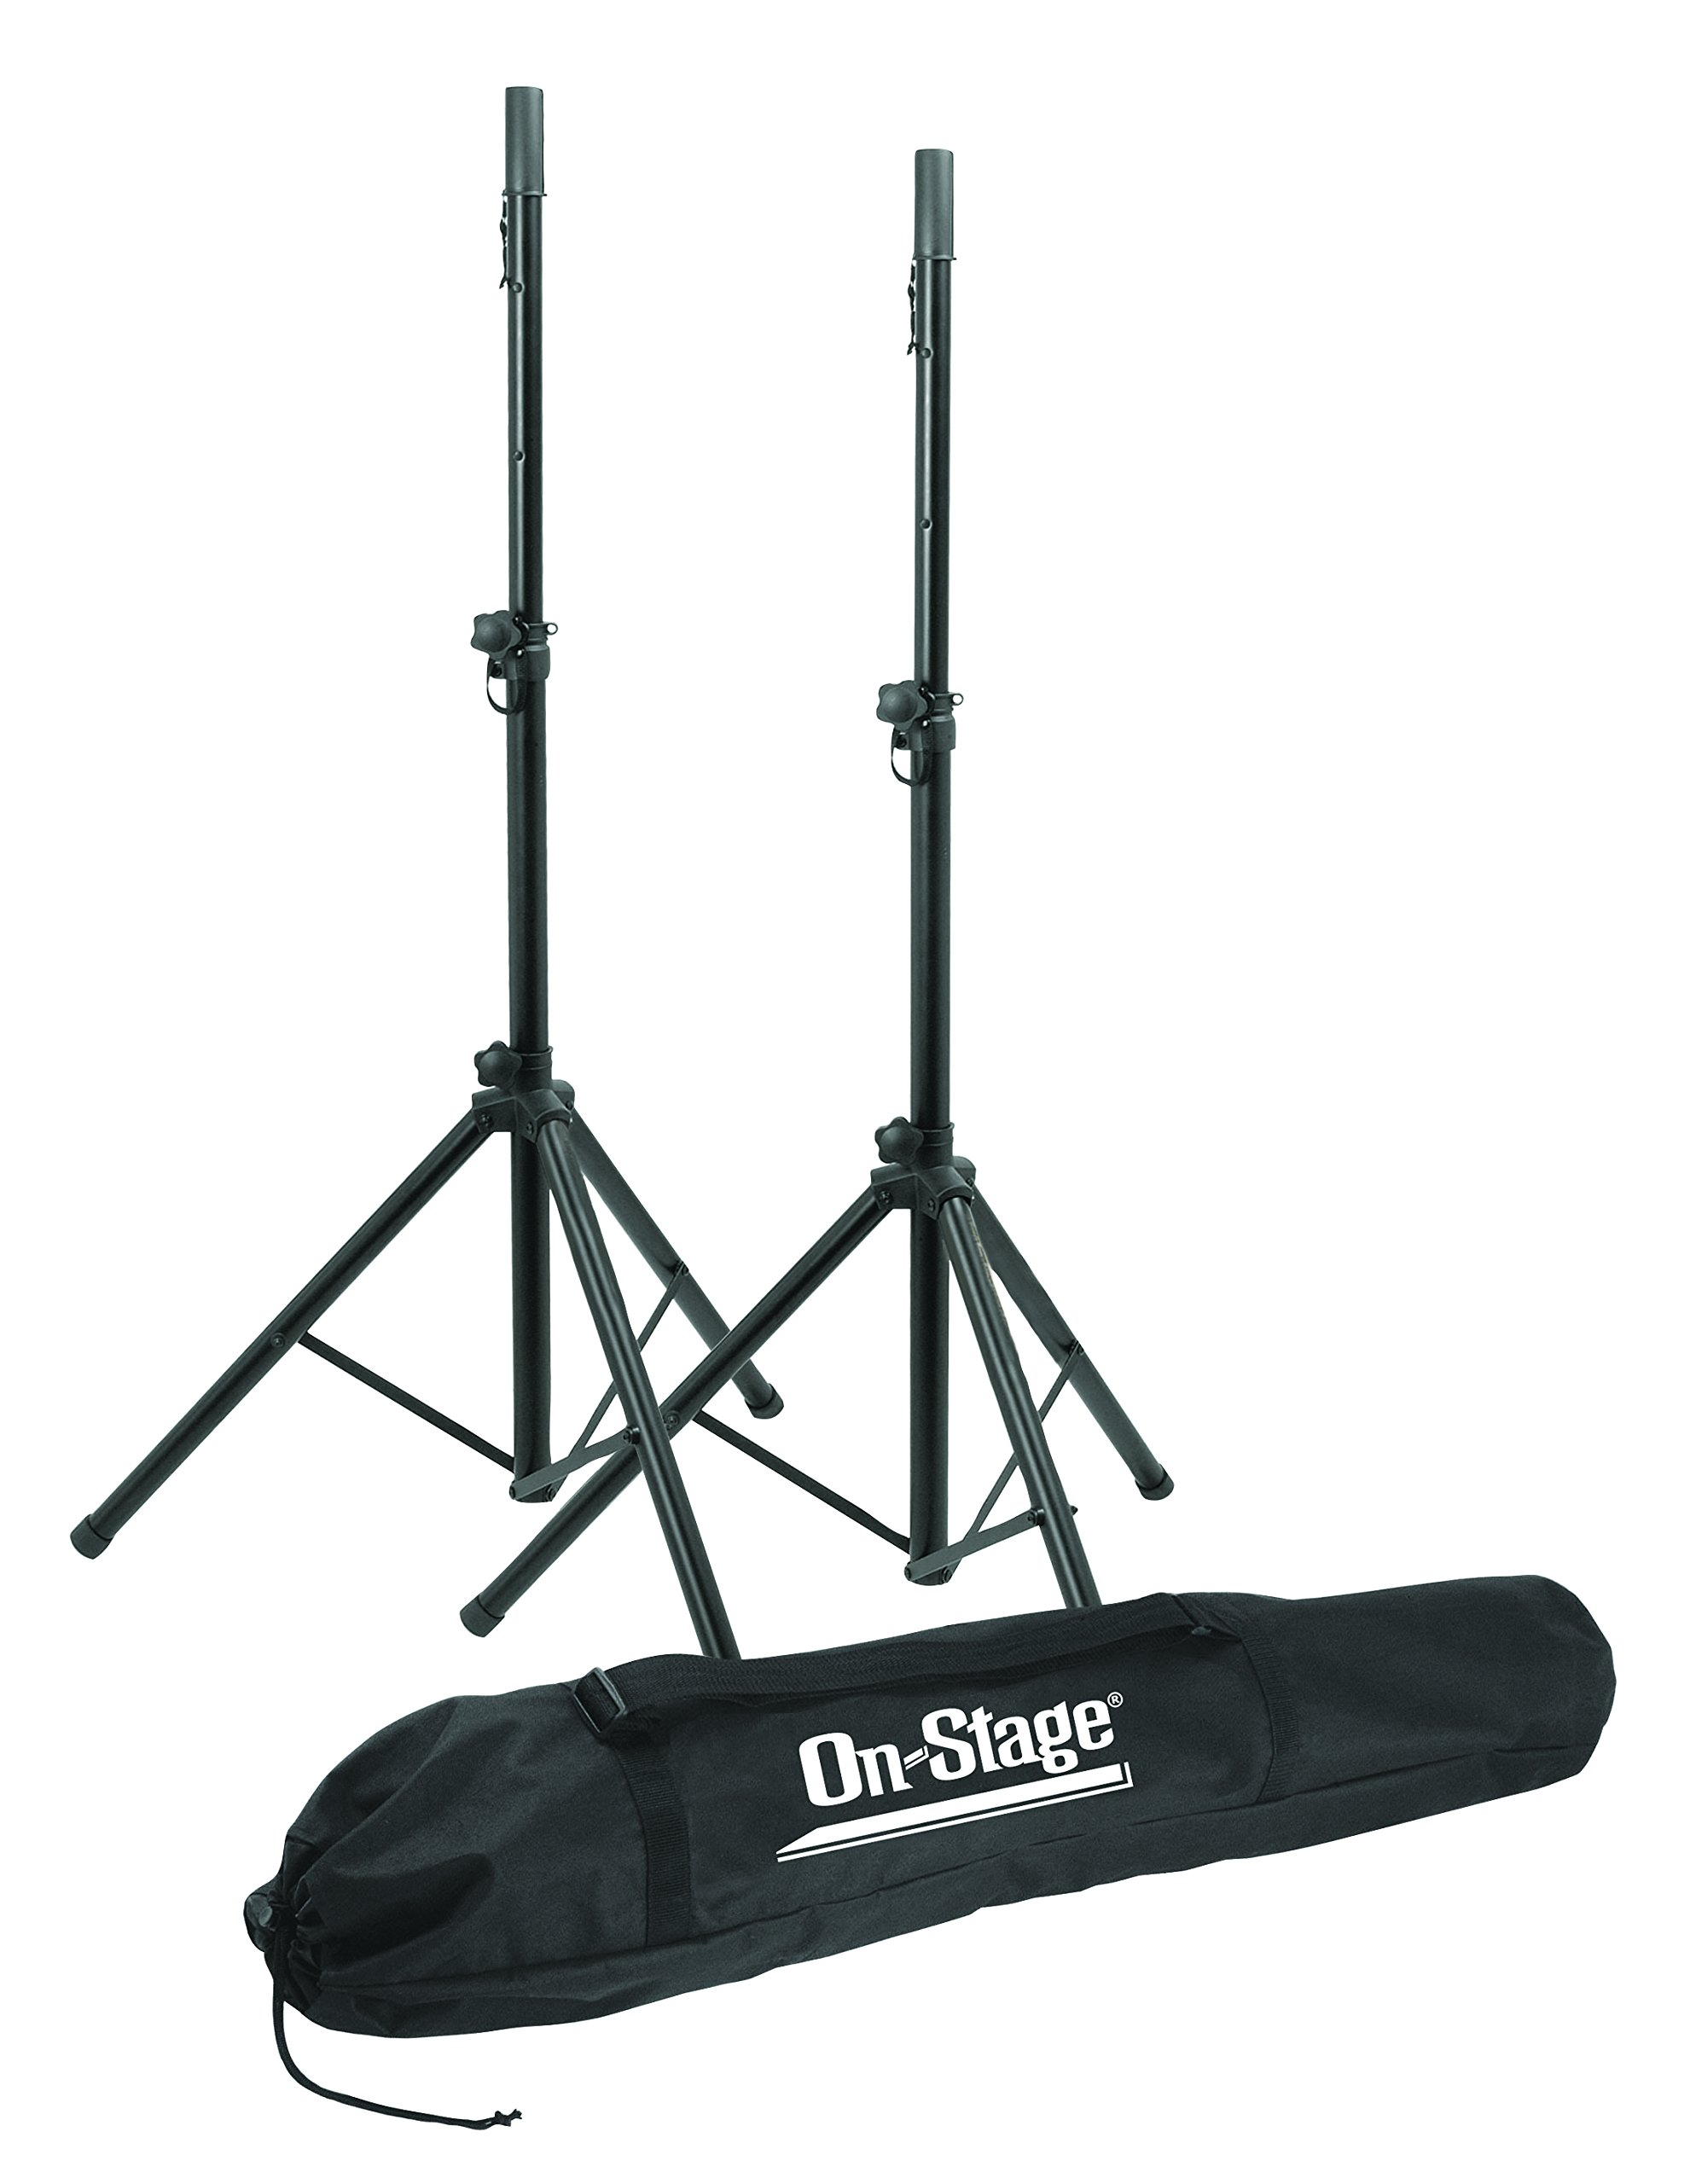 On-Stage SSP7900 All-Aluminum Speaker Stand Package with Bag by OnStage